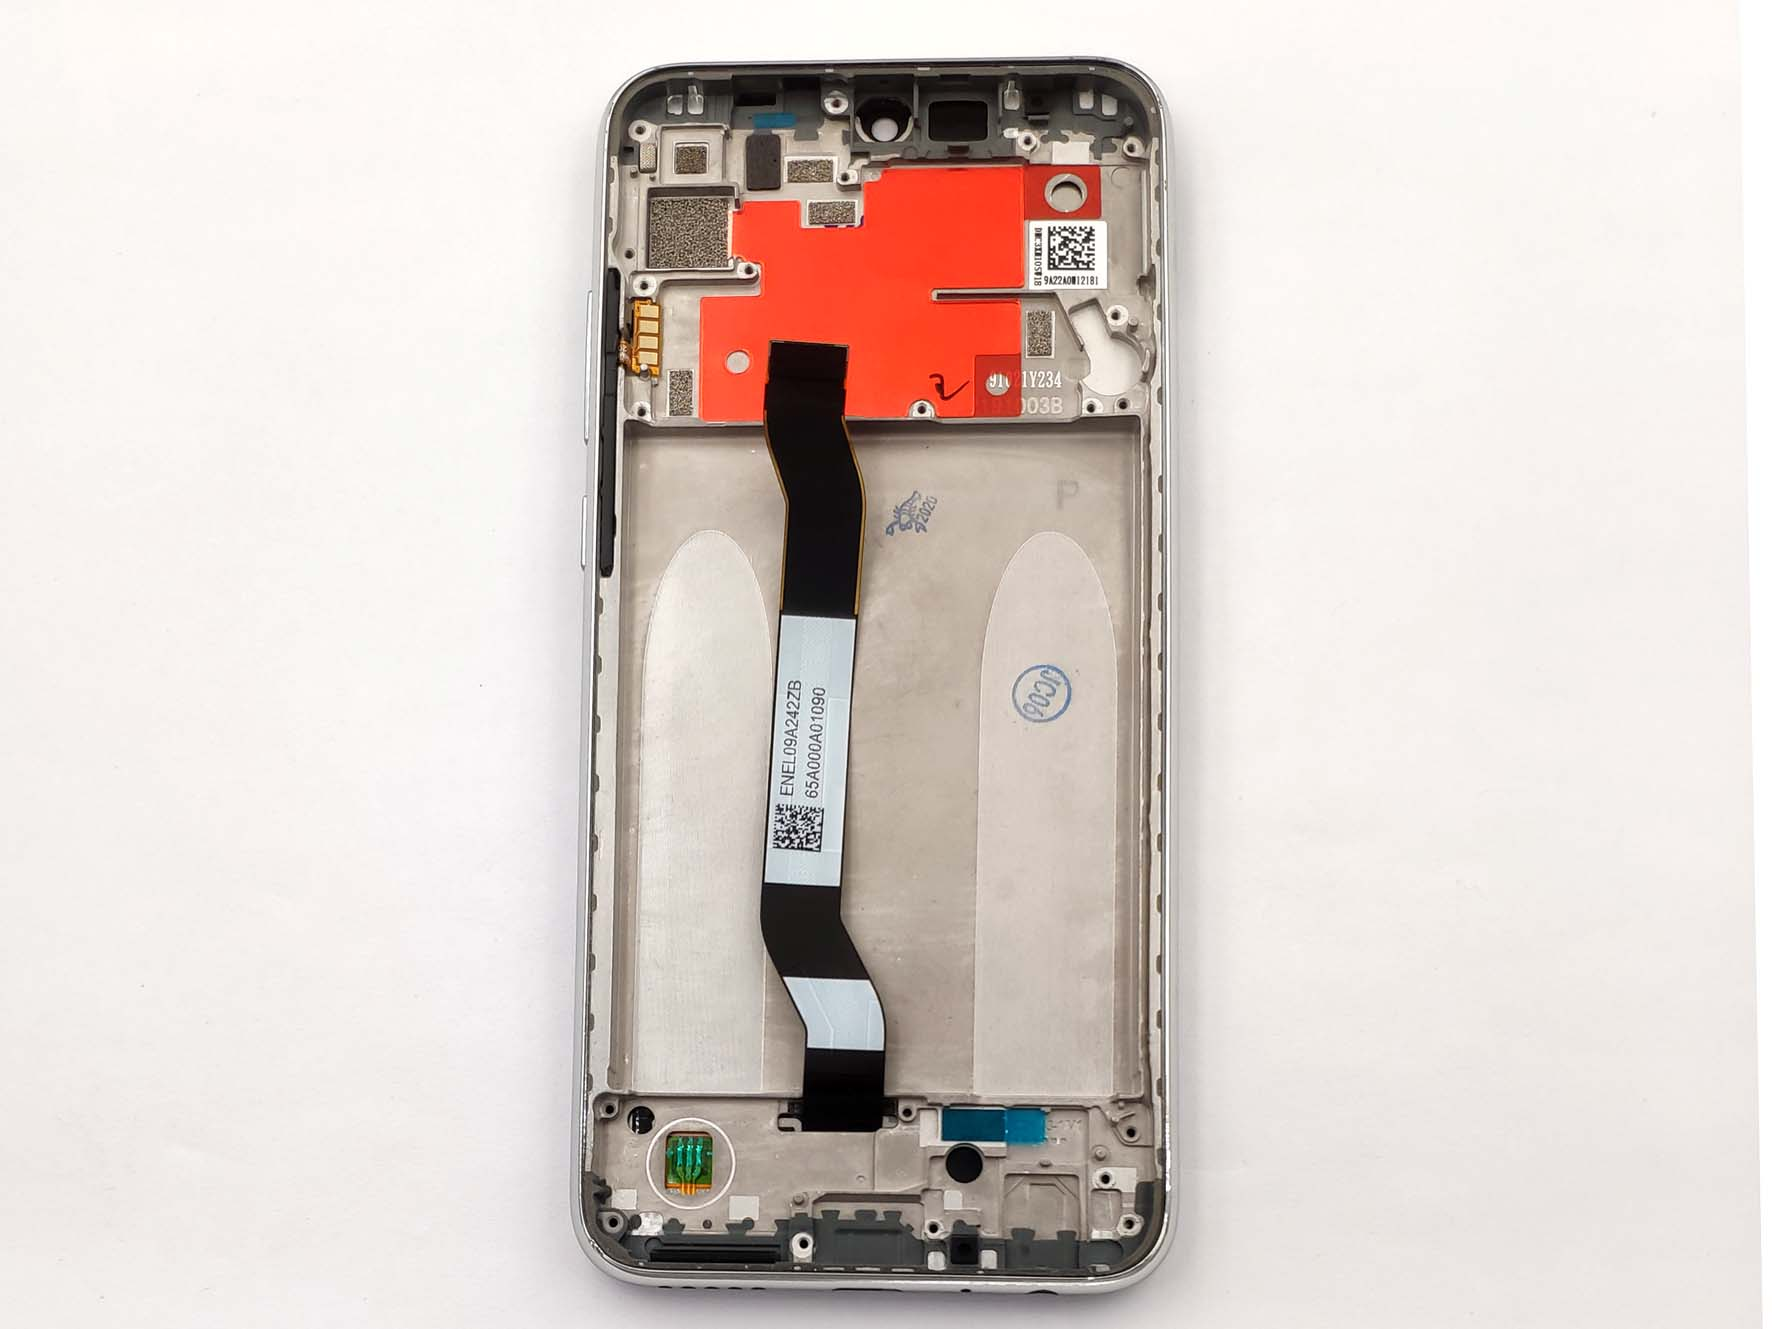 Double side Glue kit attachment frame with repair parts for Xiaomi mi3